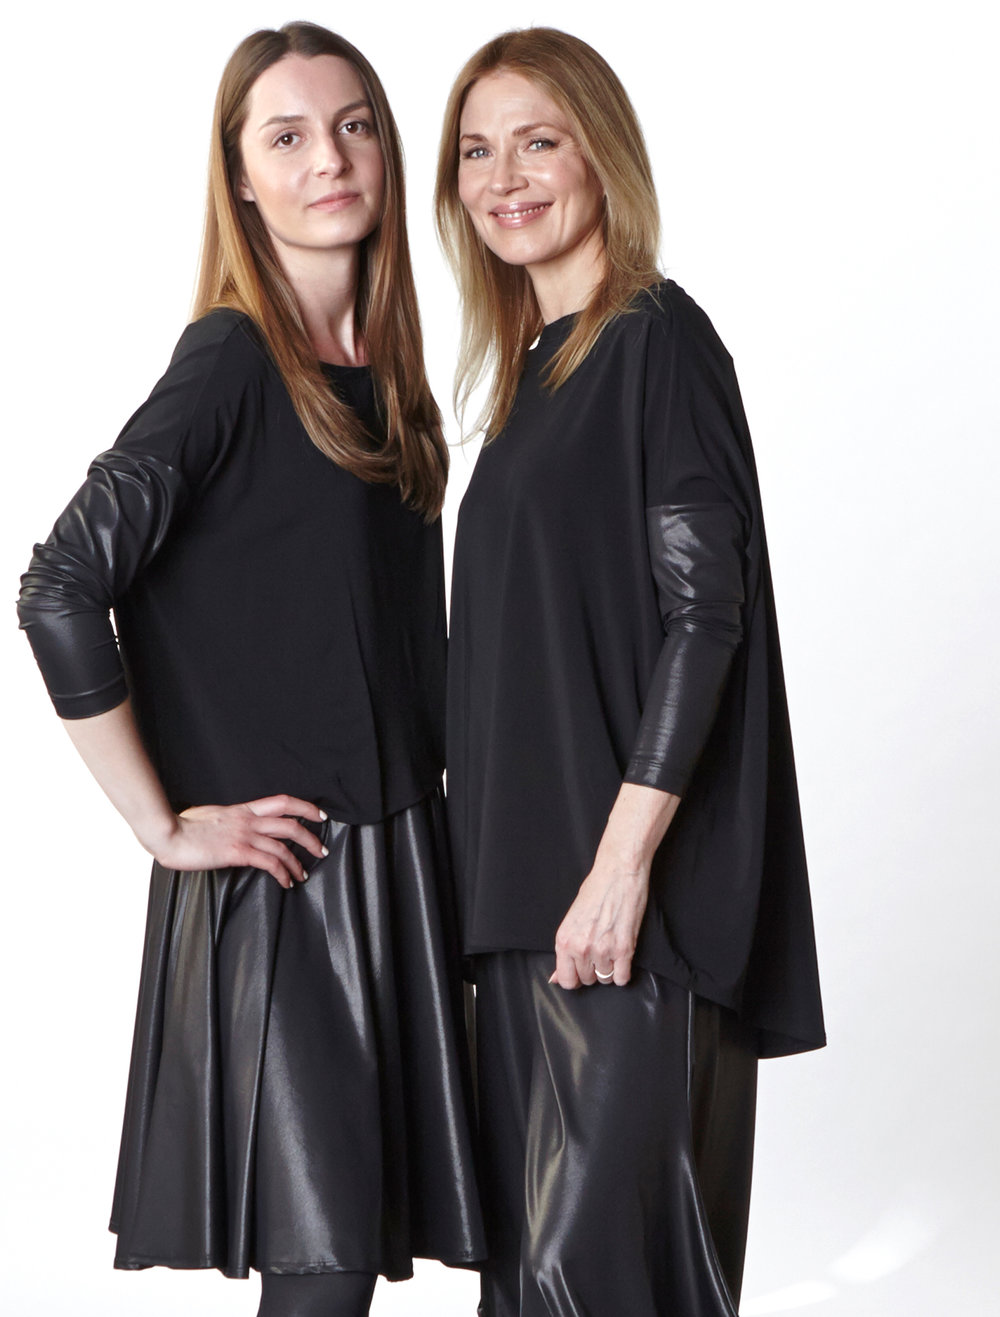 Button Back Shirt, Dansa Skirt, Dimitri Tunic, Hamish Pant in Black Italian Laminato